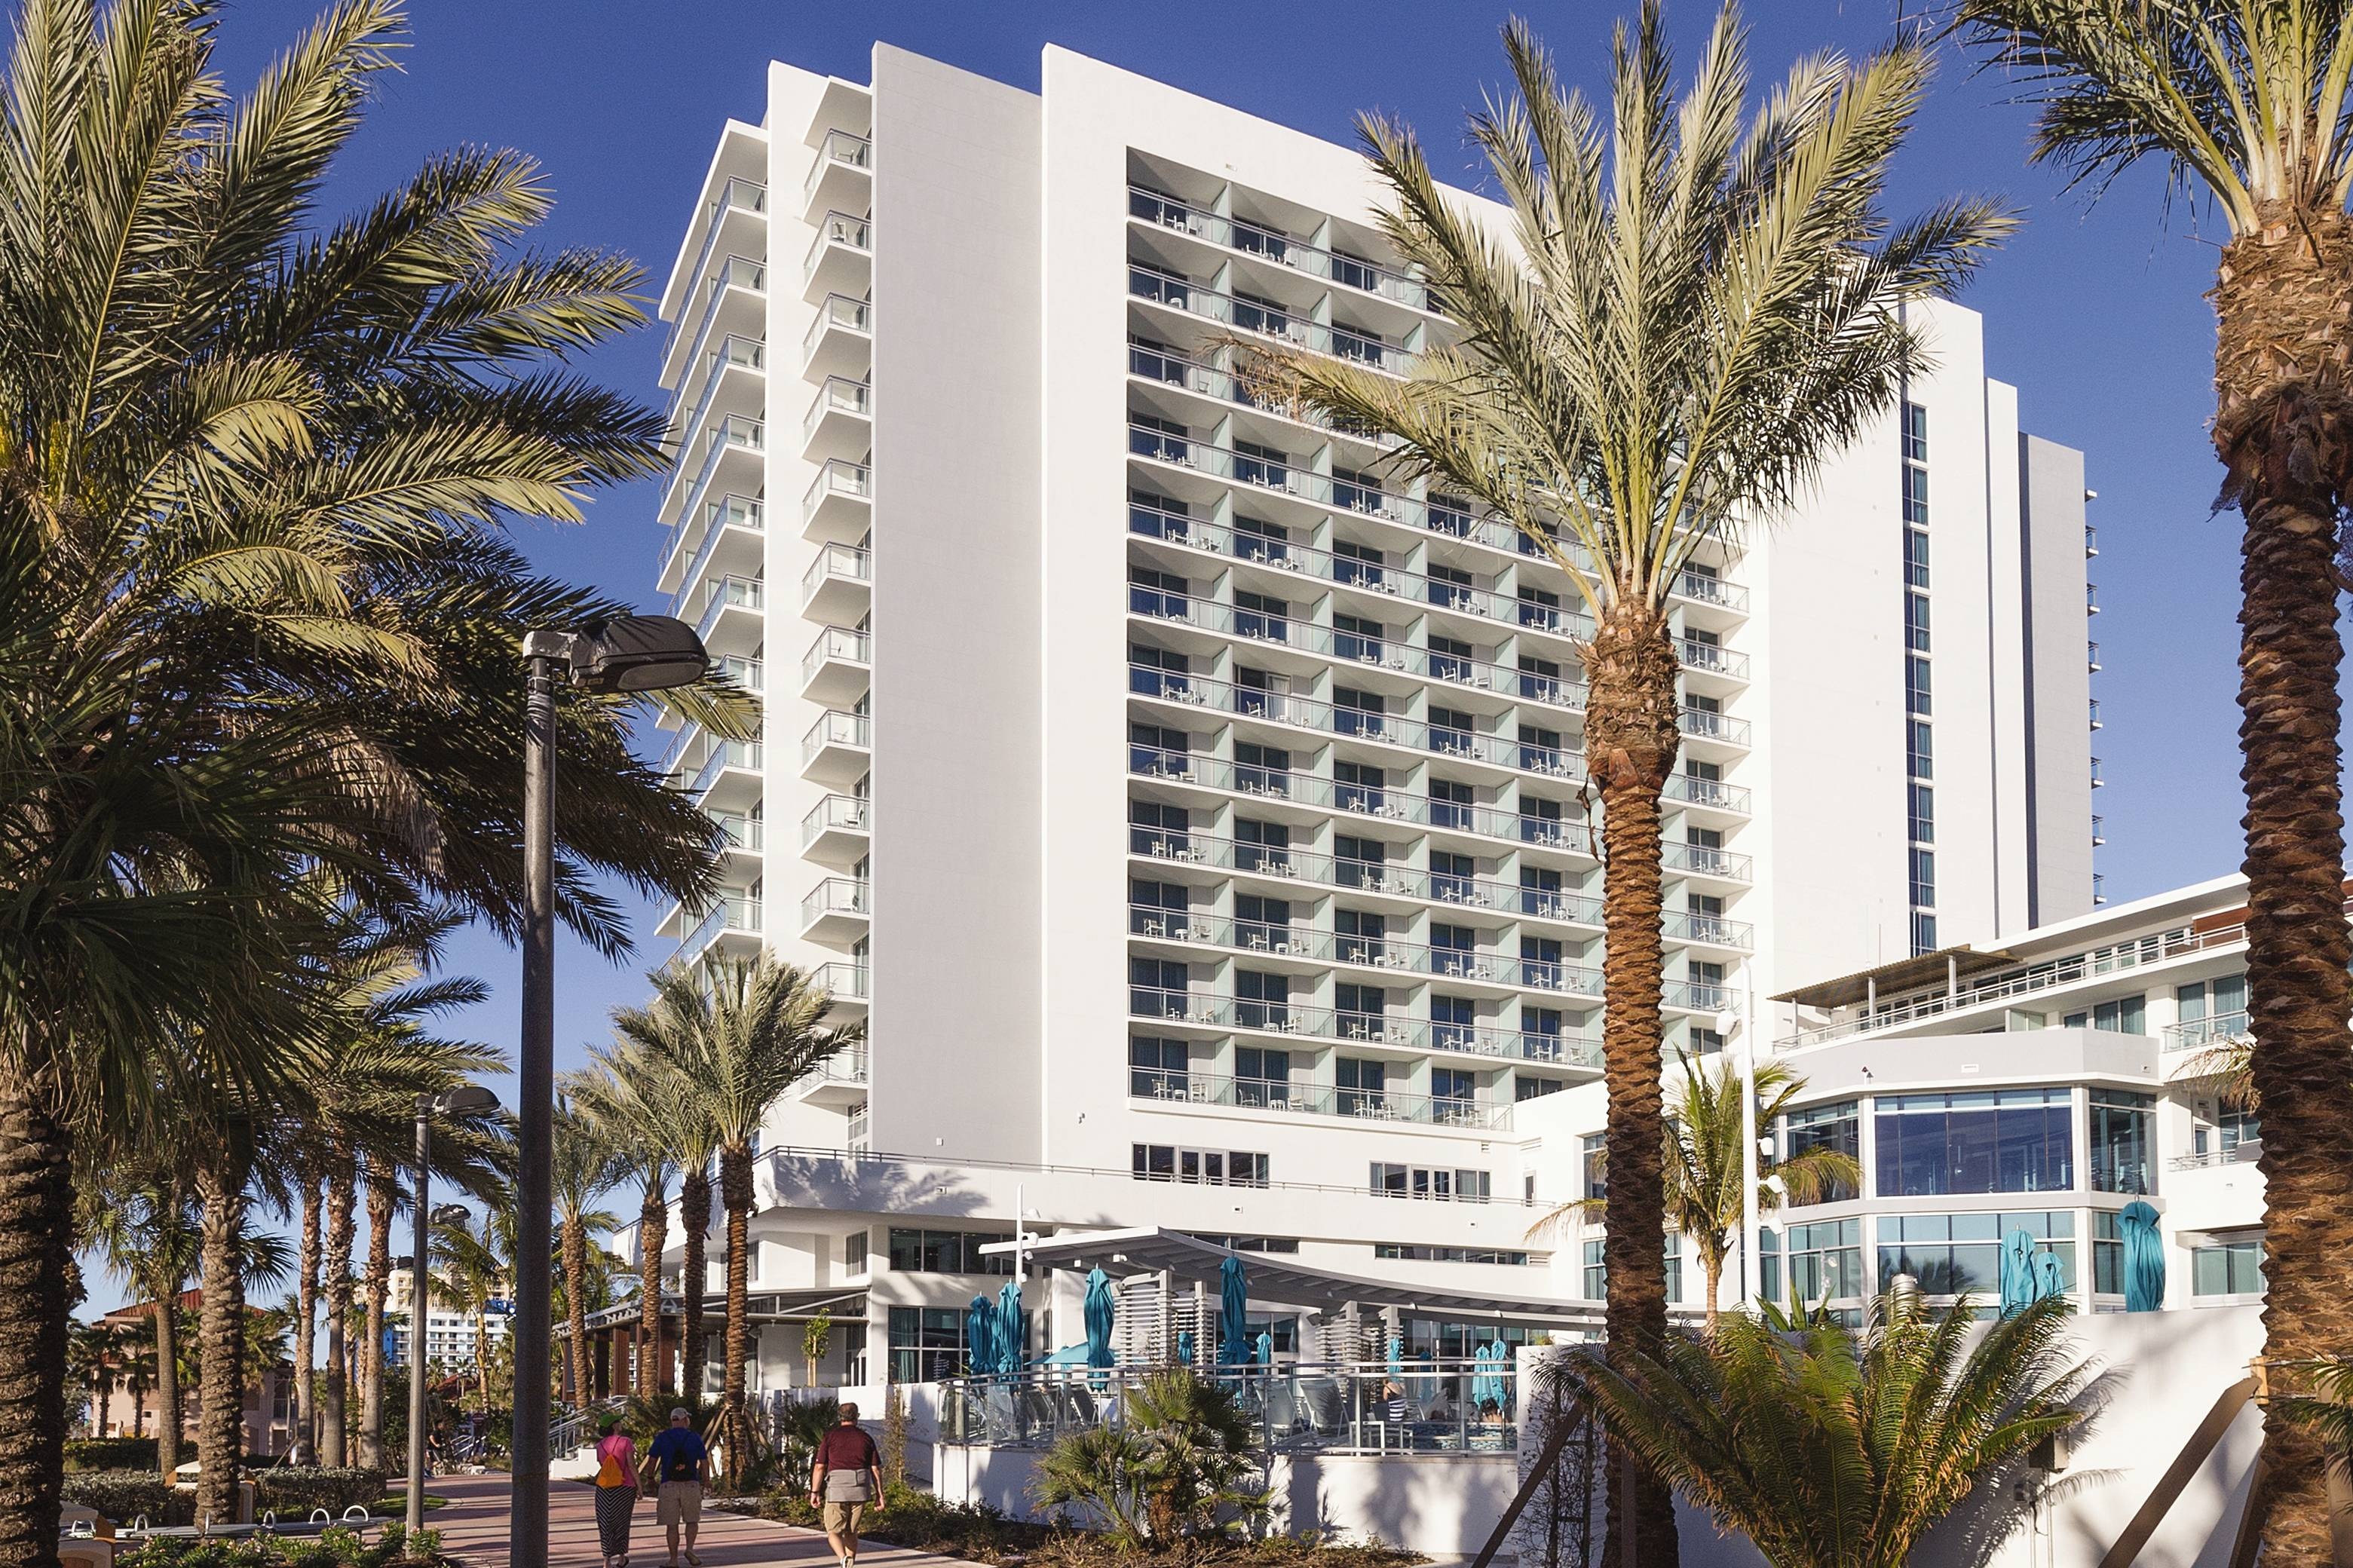 Wyndham Clearwater Beach Resort in Pasco, Florida